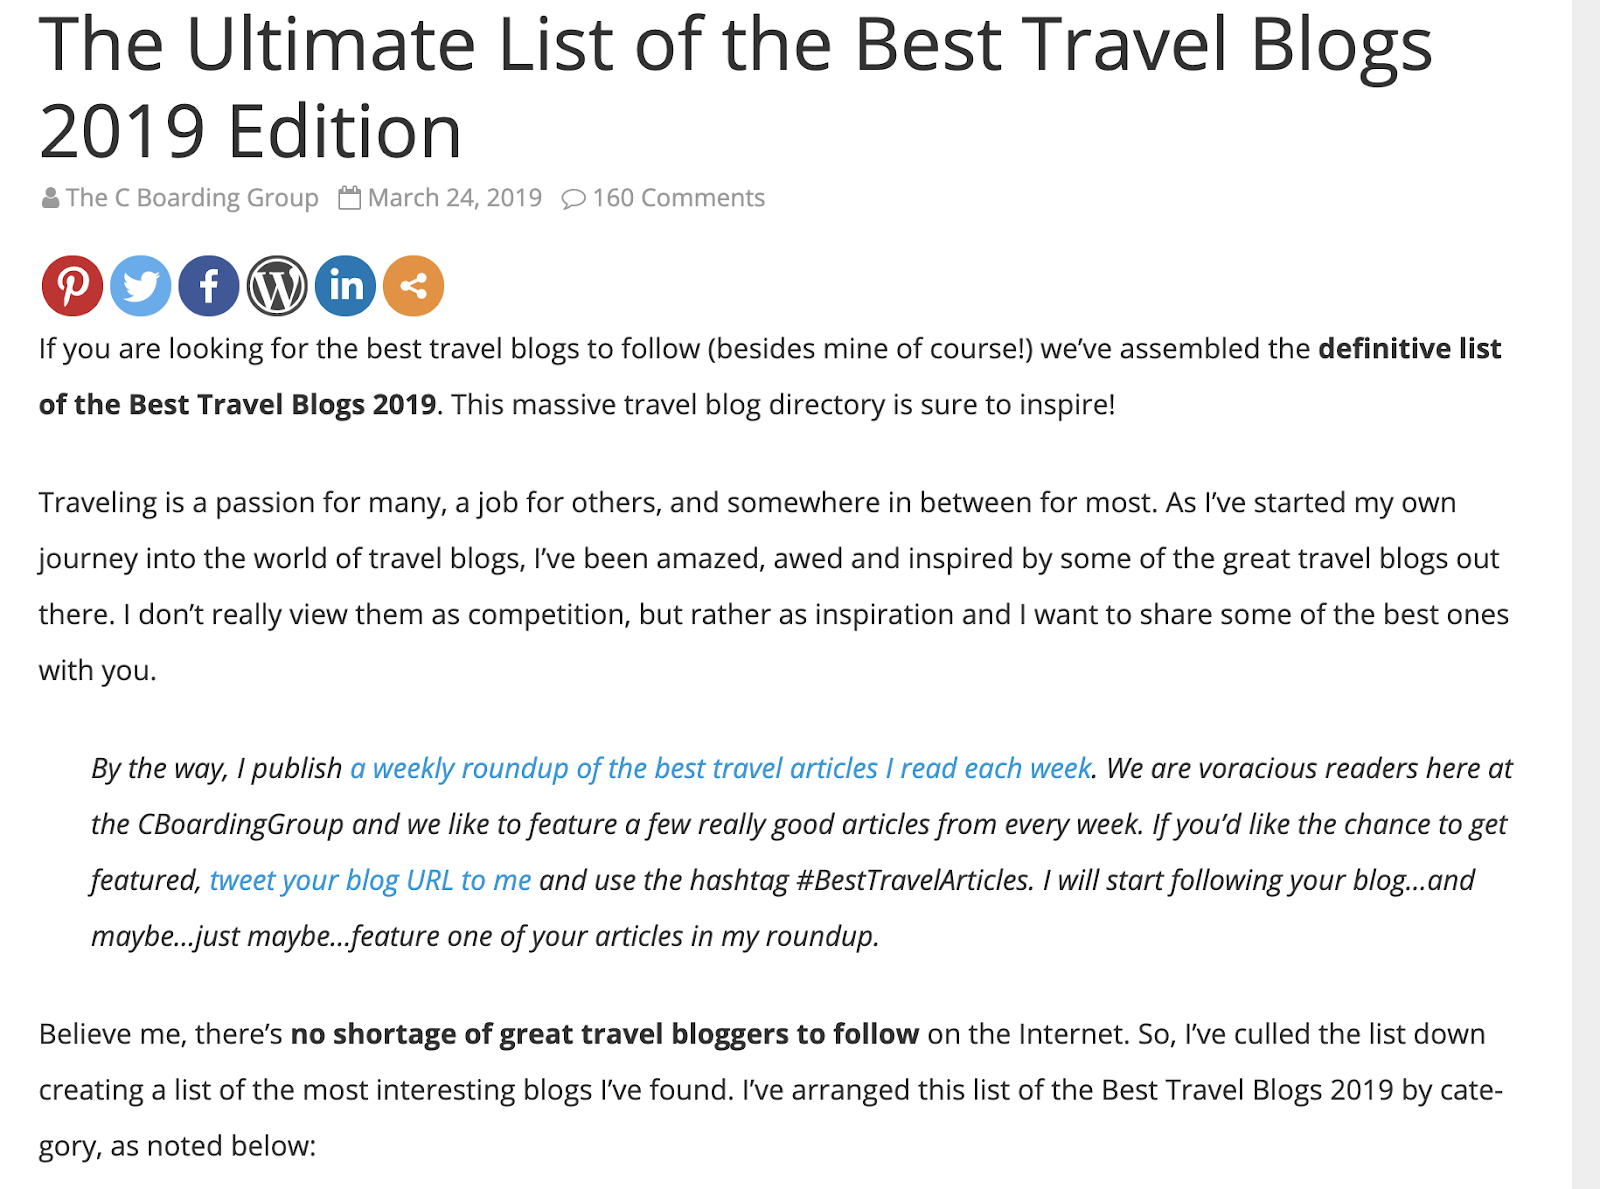 The Ultimate travel blog list